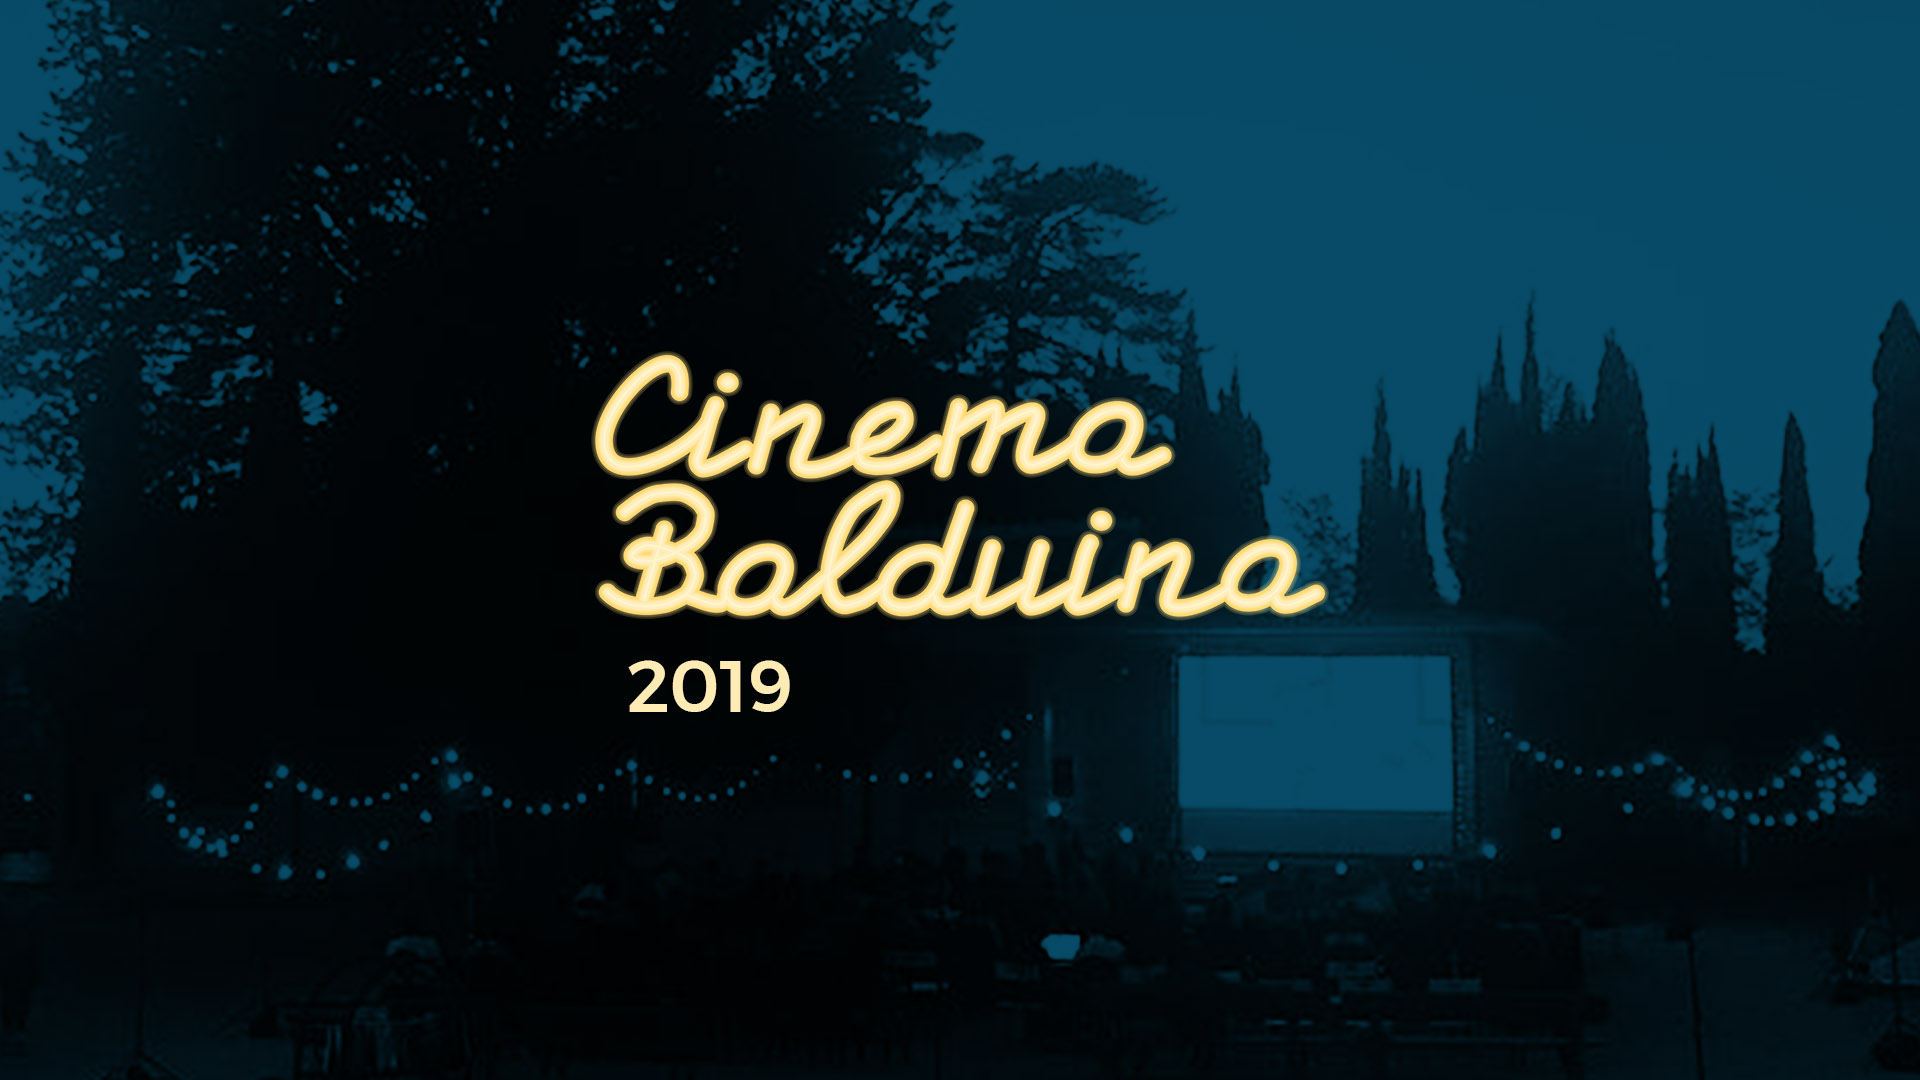 cinema balduina